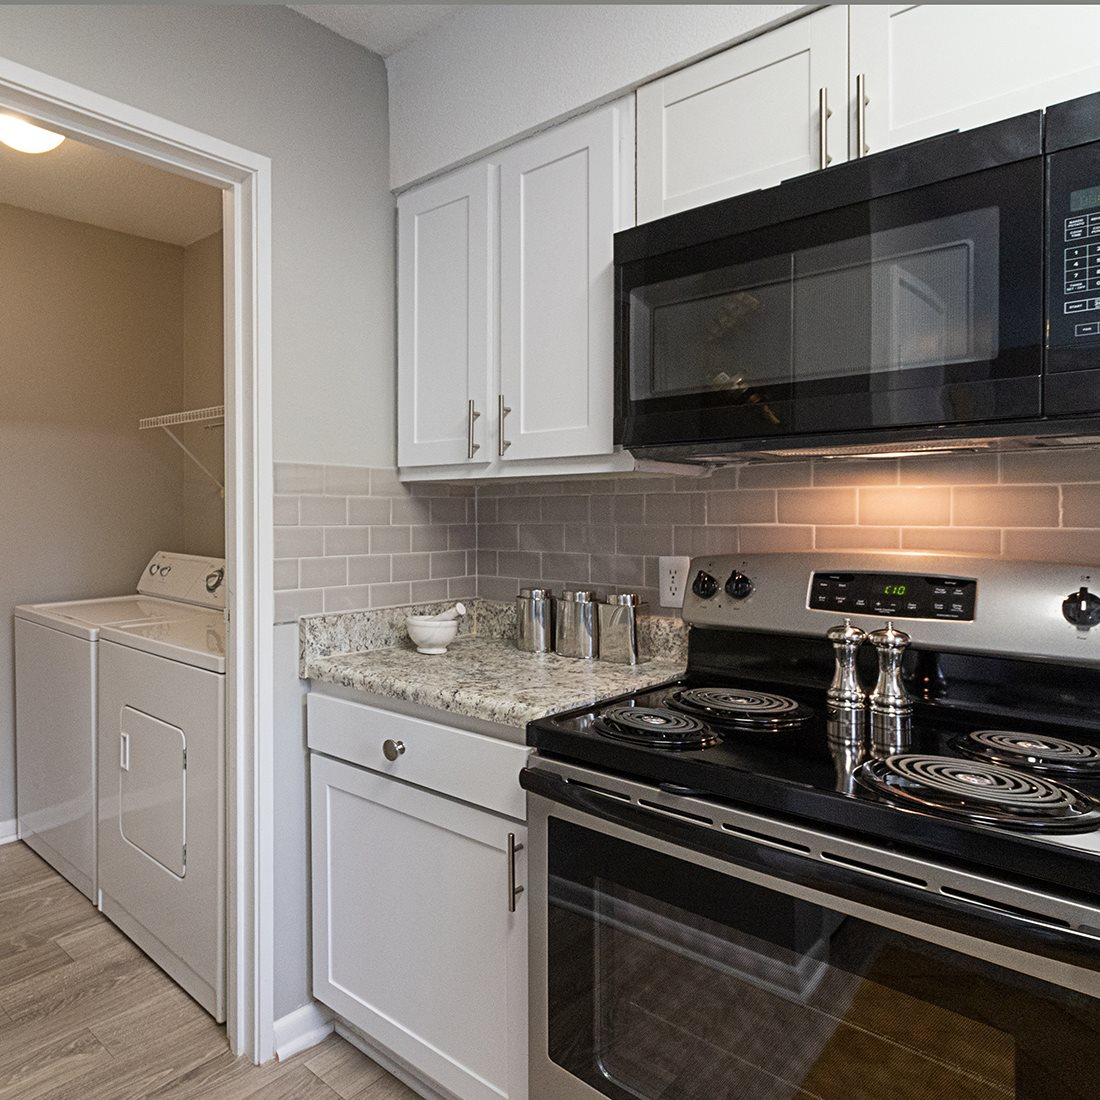 Student Apartments Greenville NC